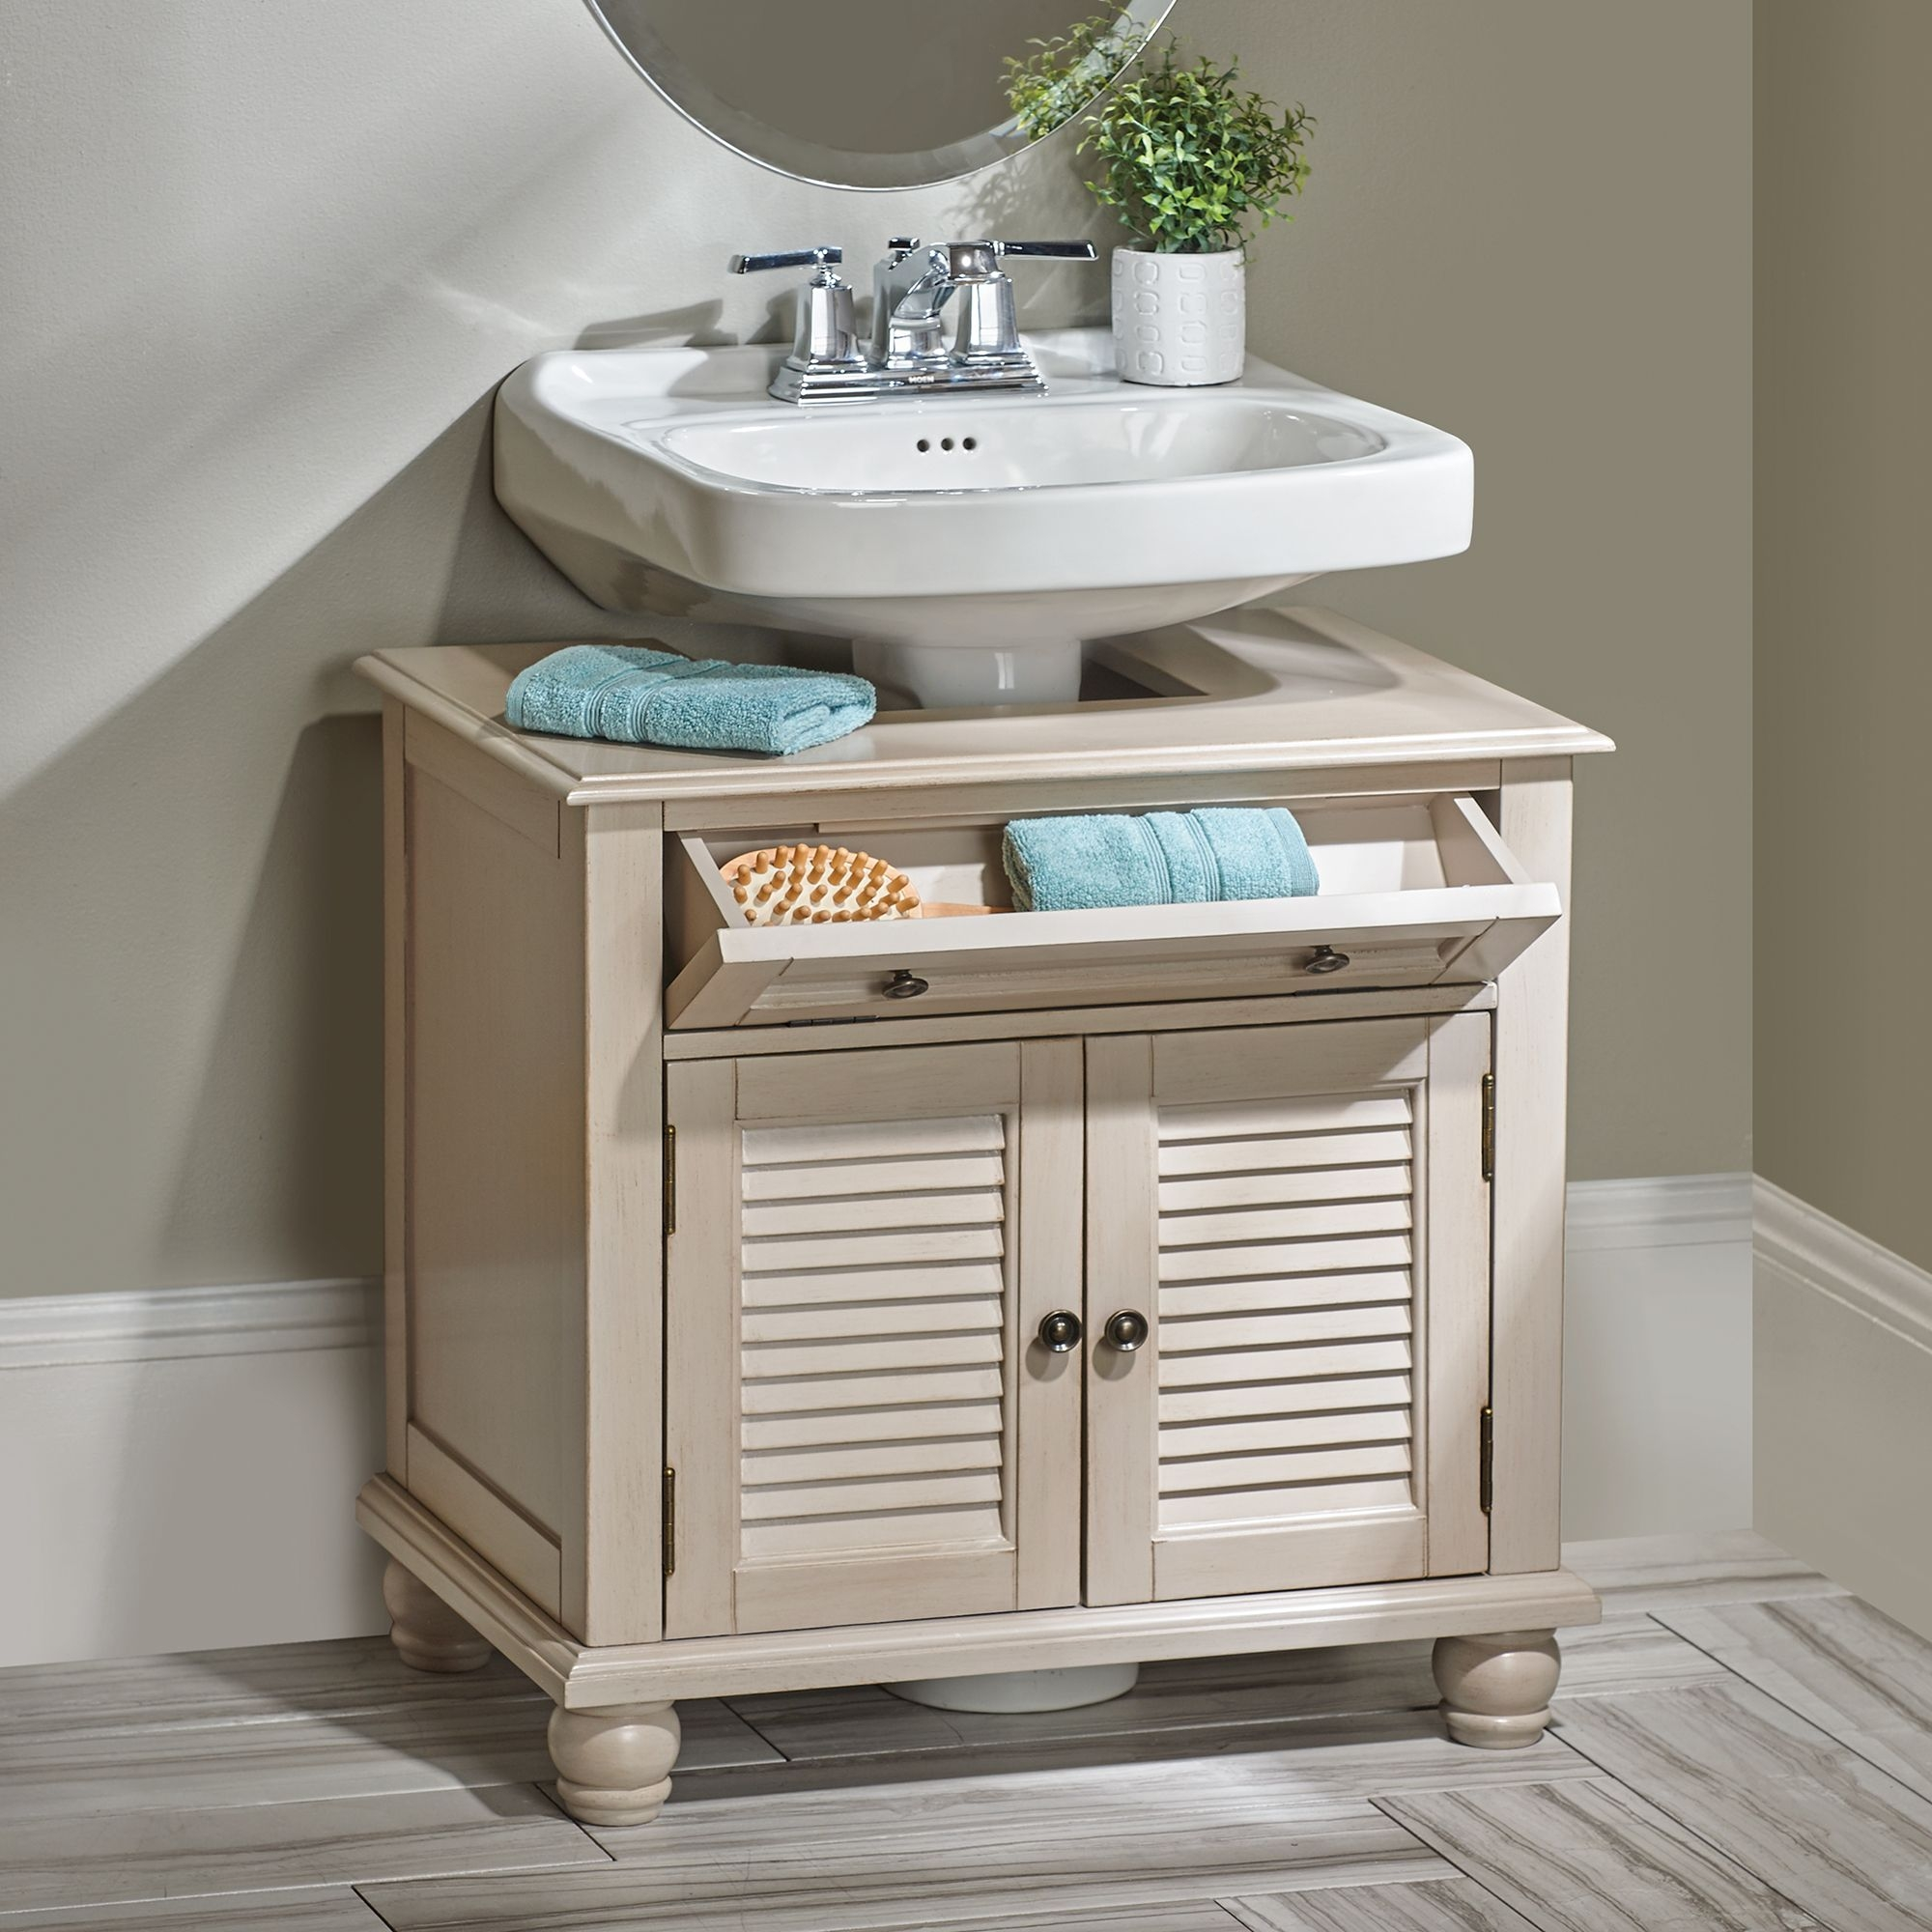 Bathroom Vanity For Pedestal Sink